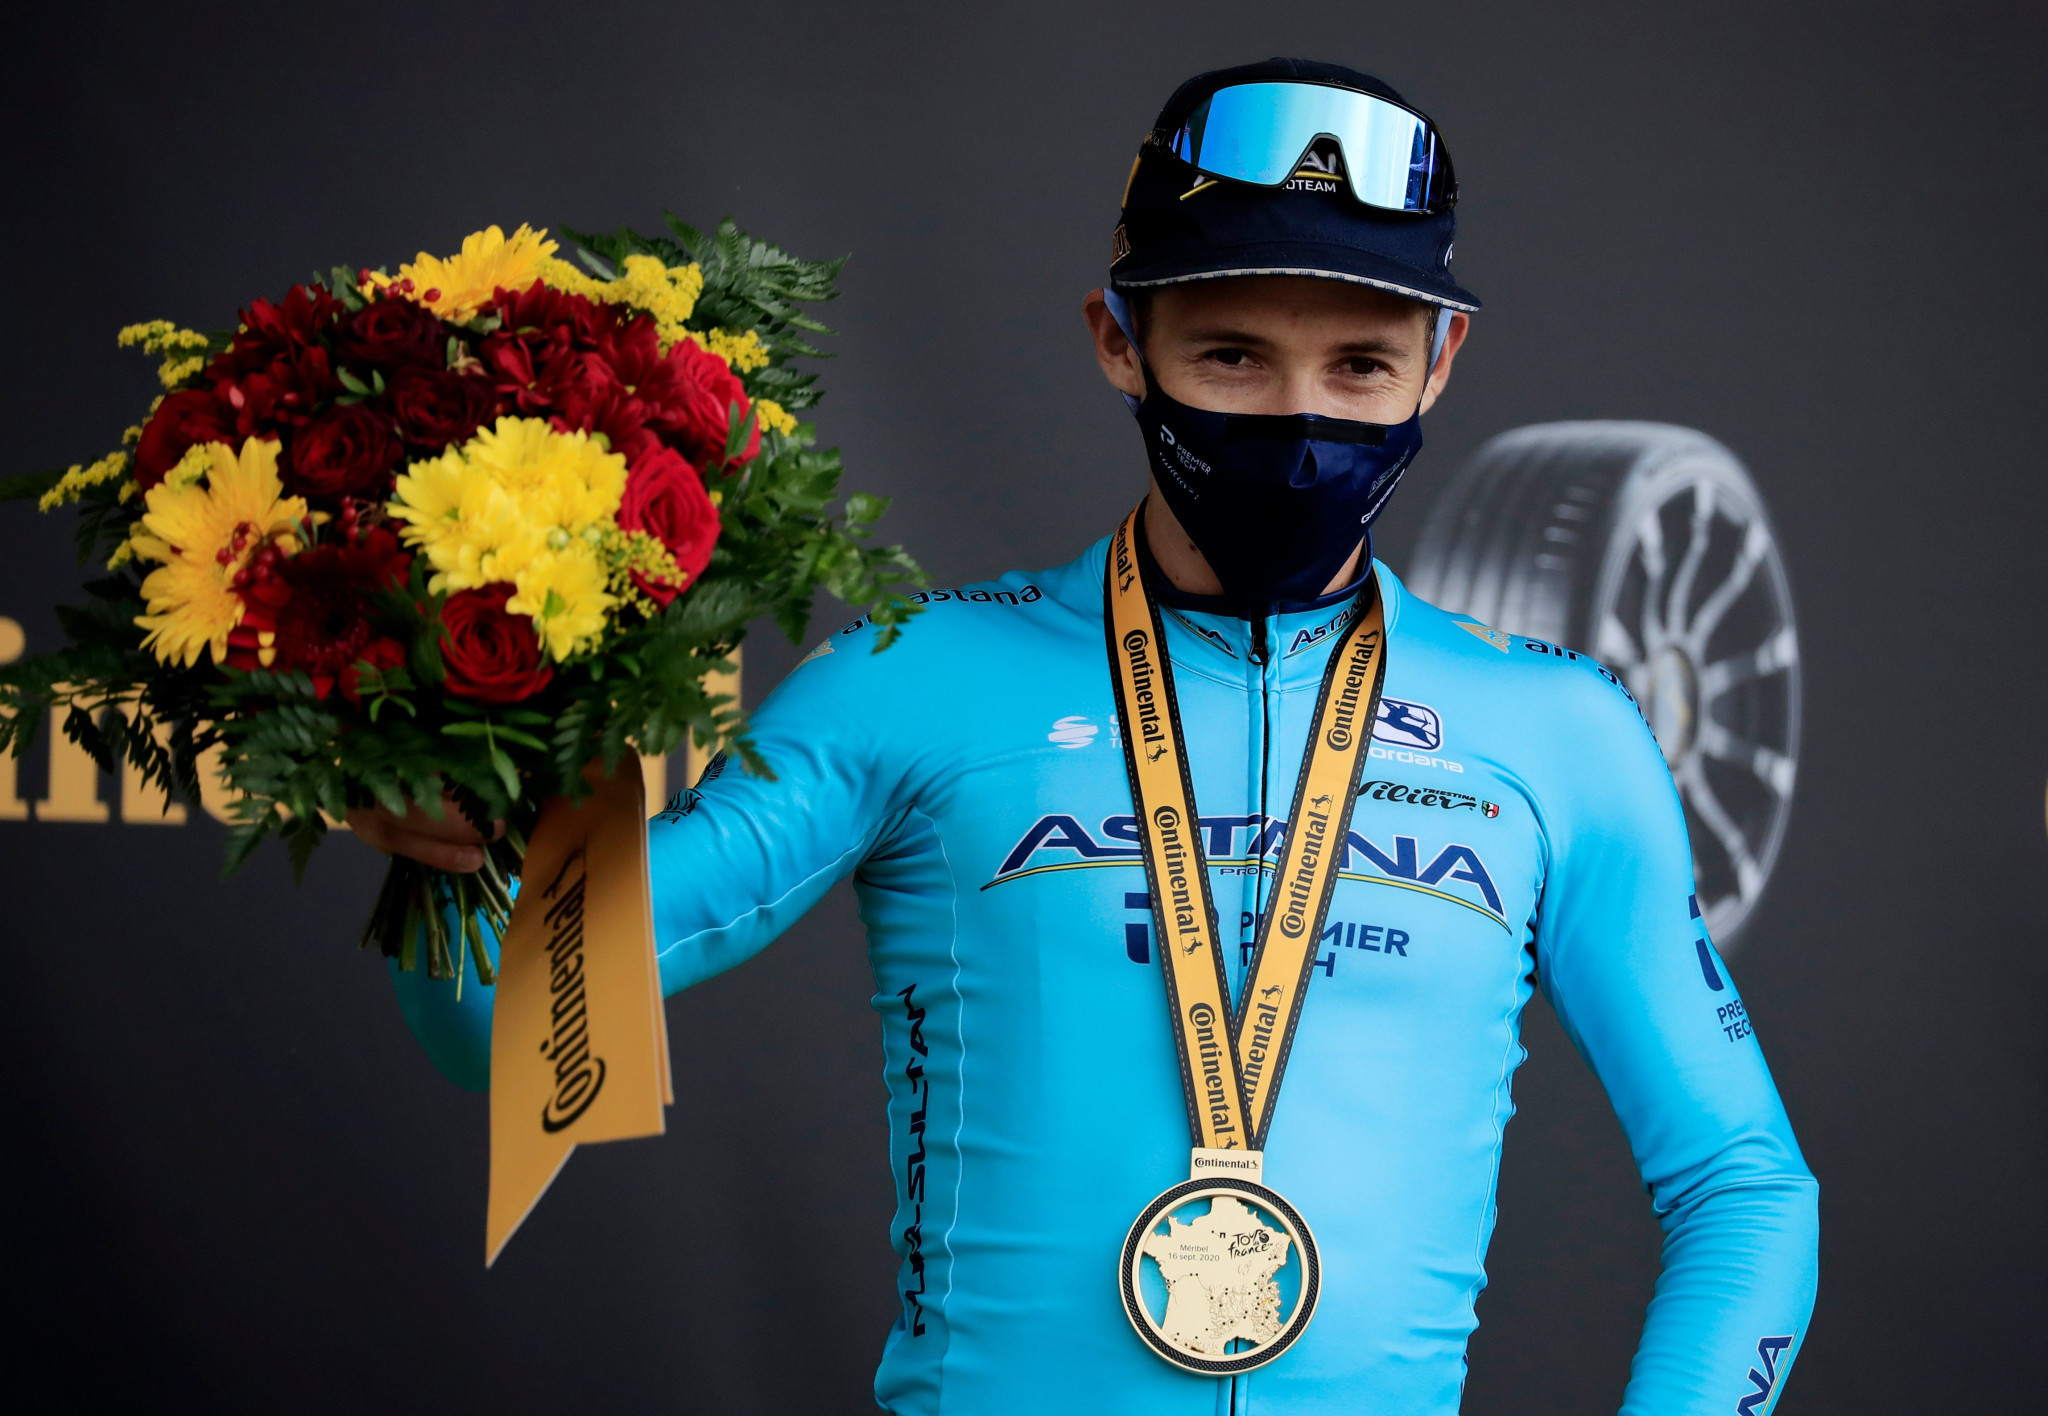 López masters the mountains to win stage 17 of Tour de France